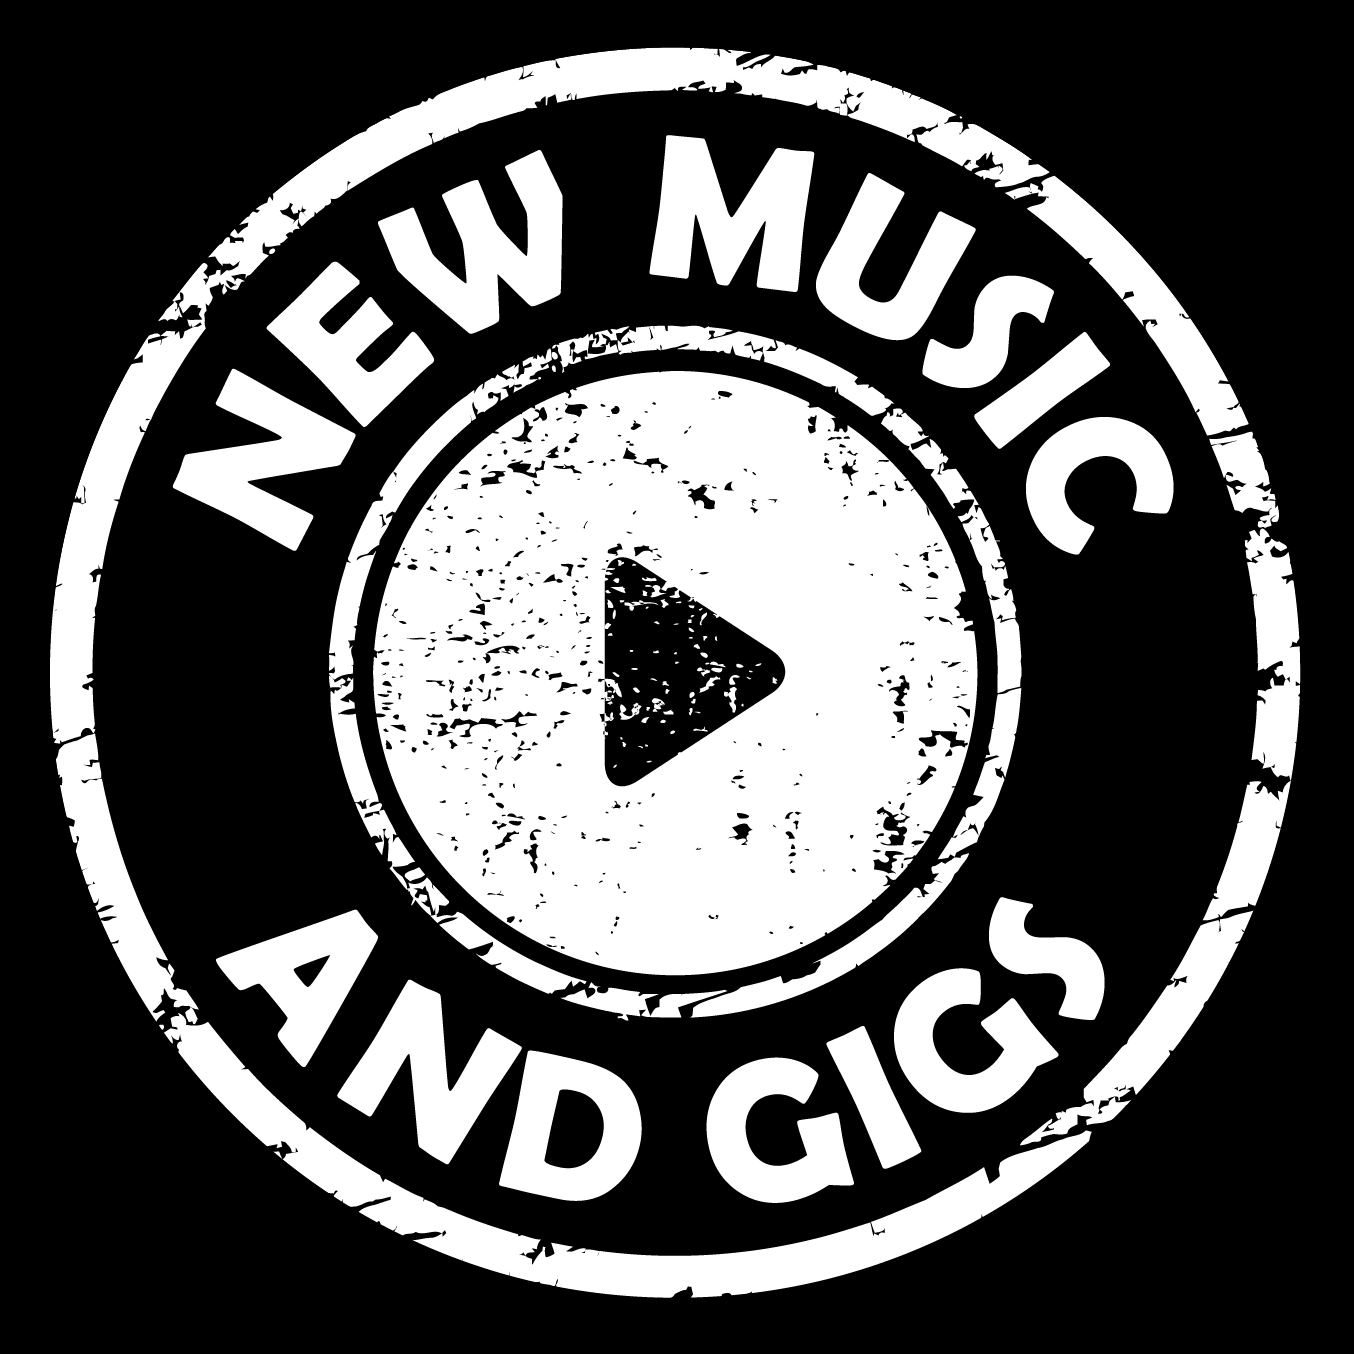 New Music and Gigs - Music Promotion